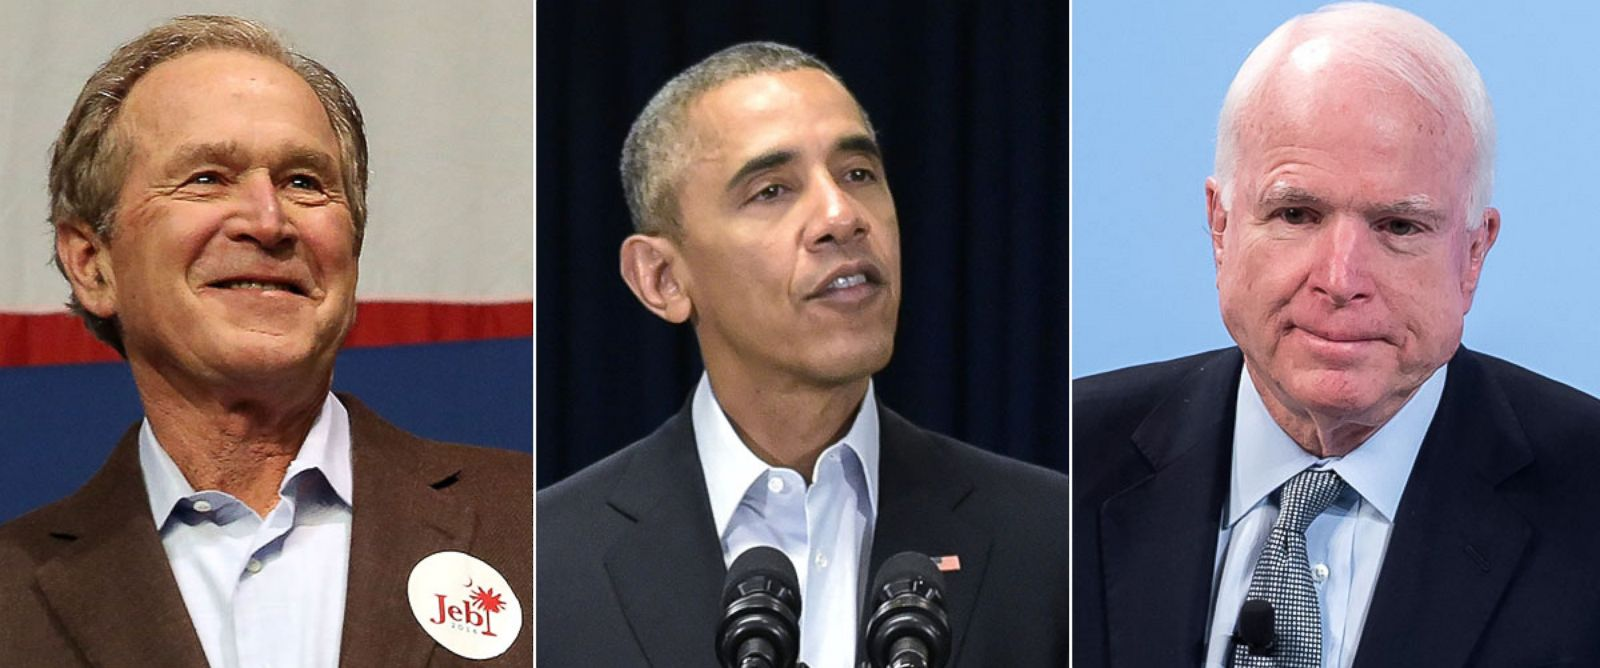 PHOTO: George W. Bush stands on stage before speaking , Feb. 15, 2016 in North Charleston, South Carolina. Barack Obama speaks in Washington, February 13, 2016. John McCain speaks at the 2016 Munich Security Conference, Feb. 14, 2016 in Munich, Germany.